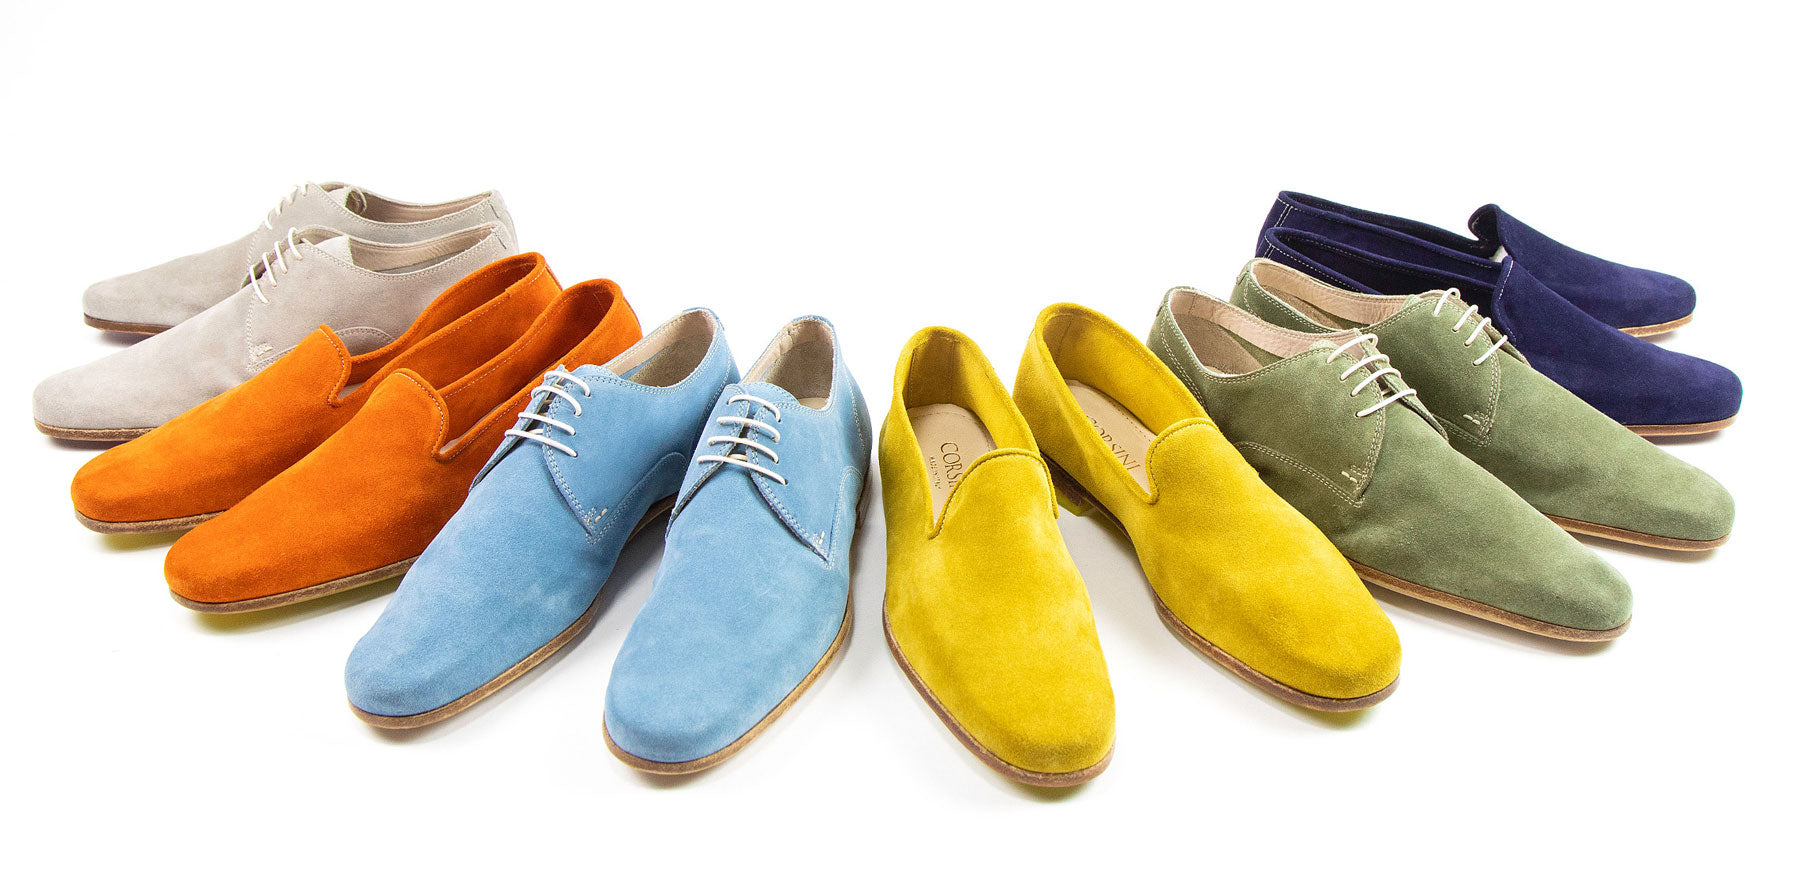 corsini shoes, coloured shoes, corsini shoes colour